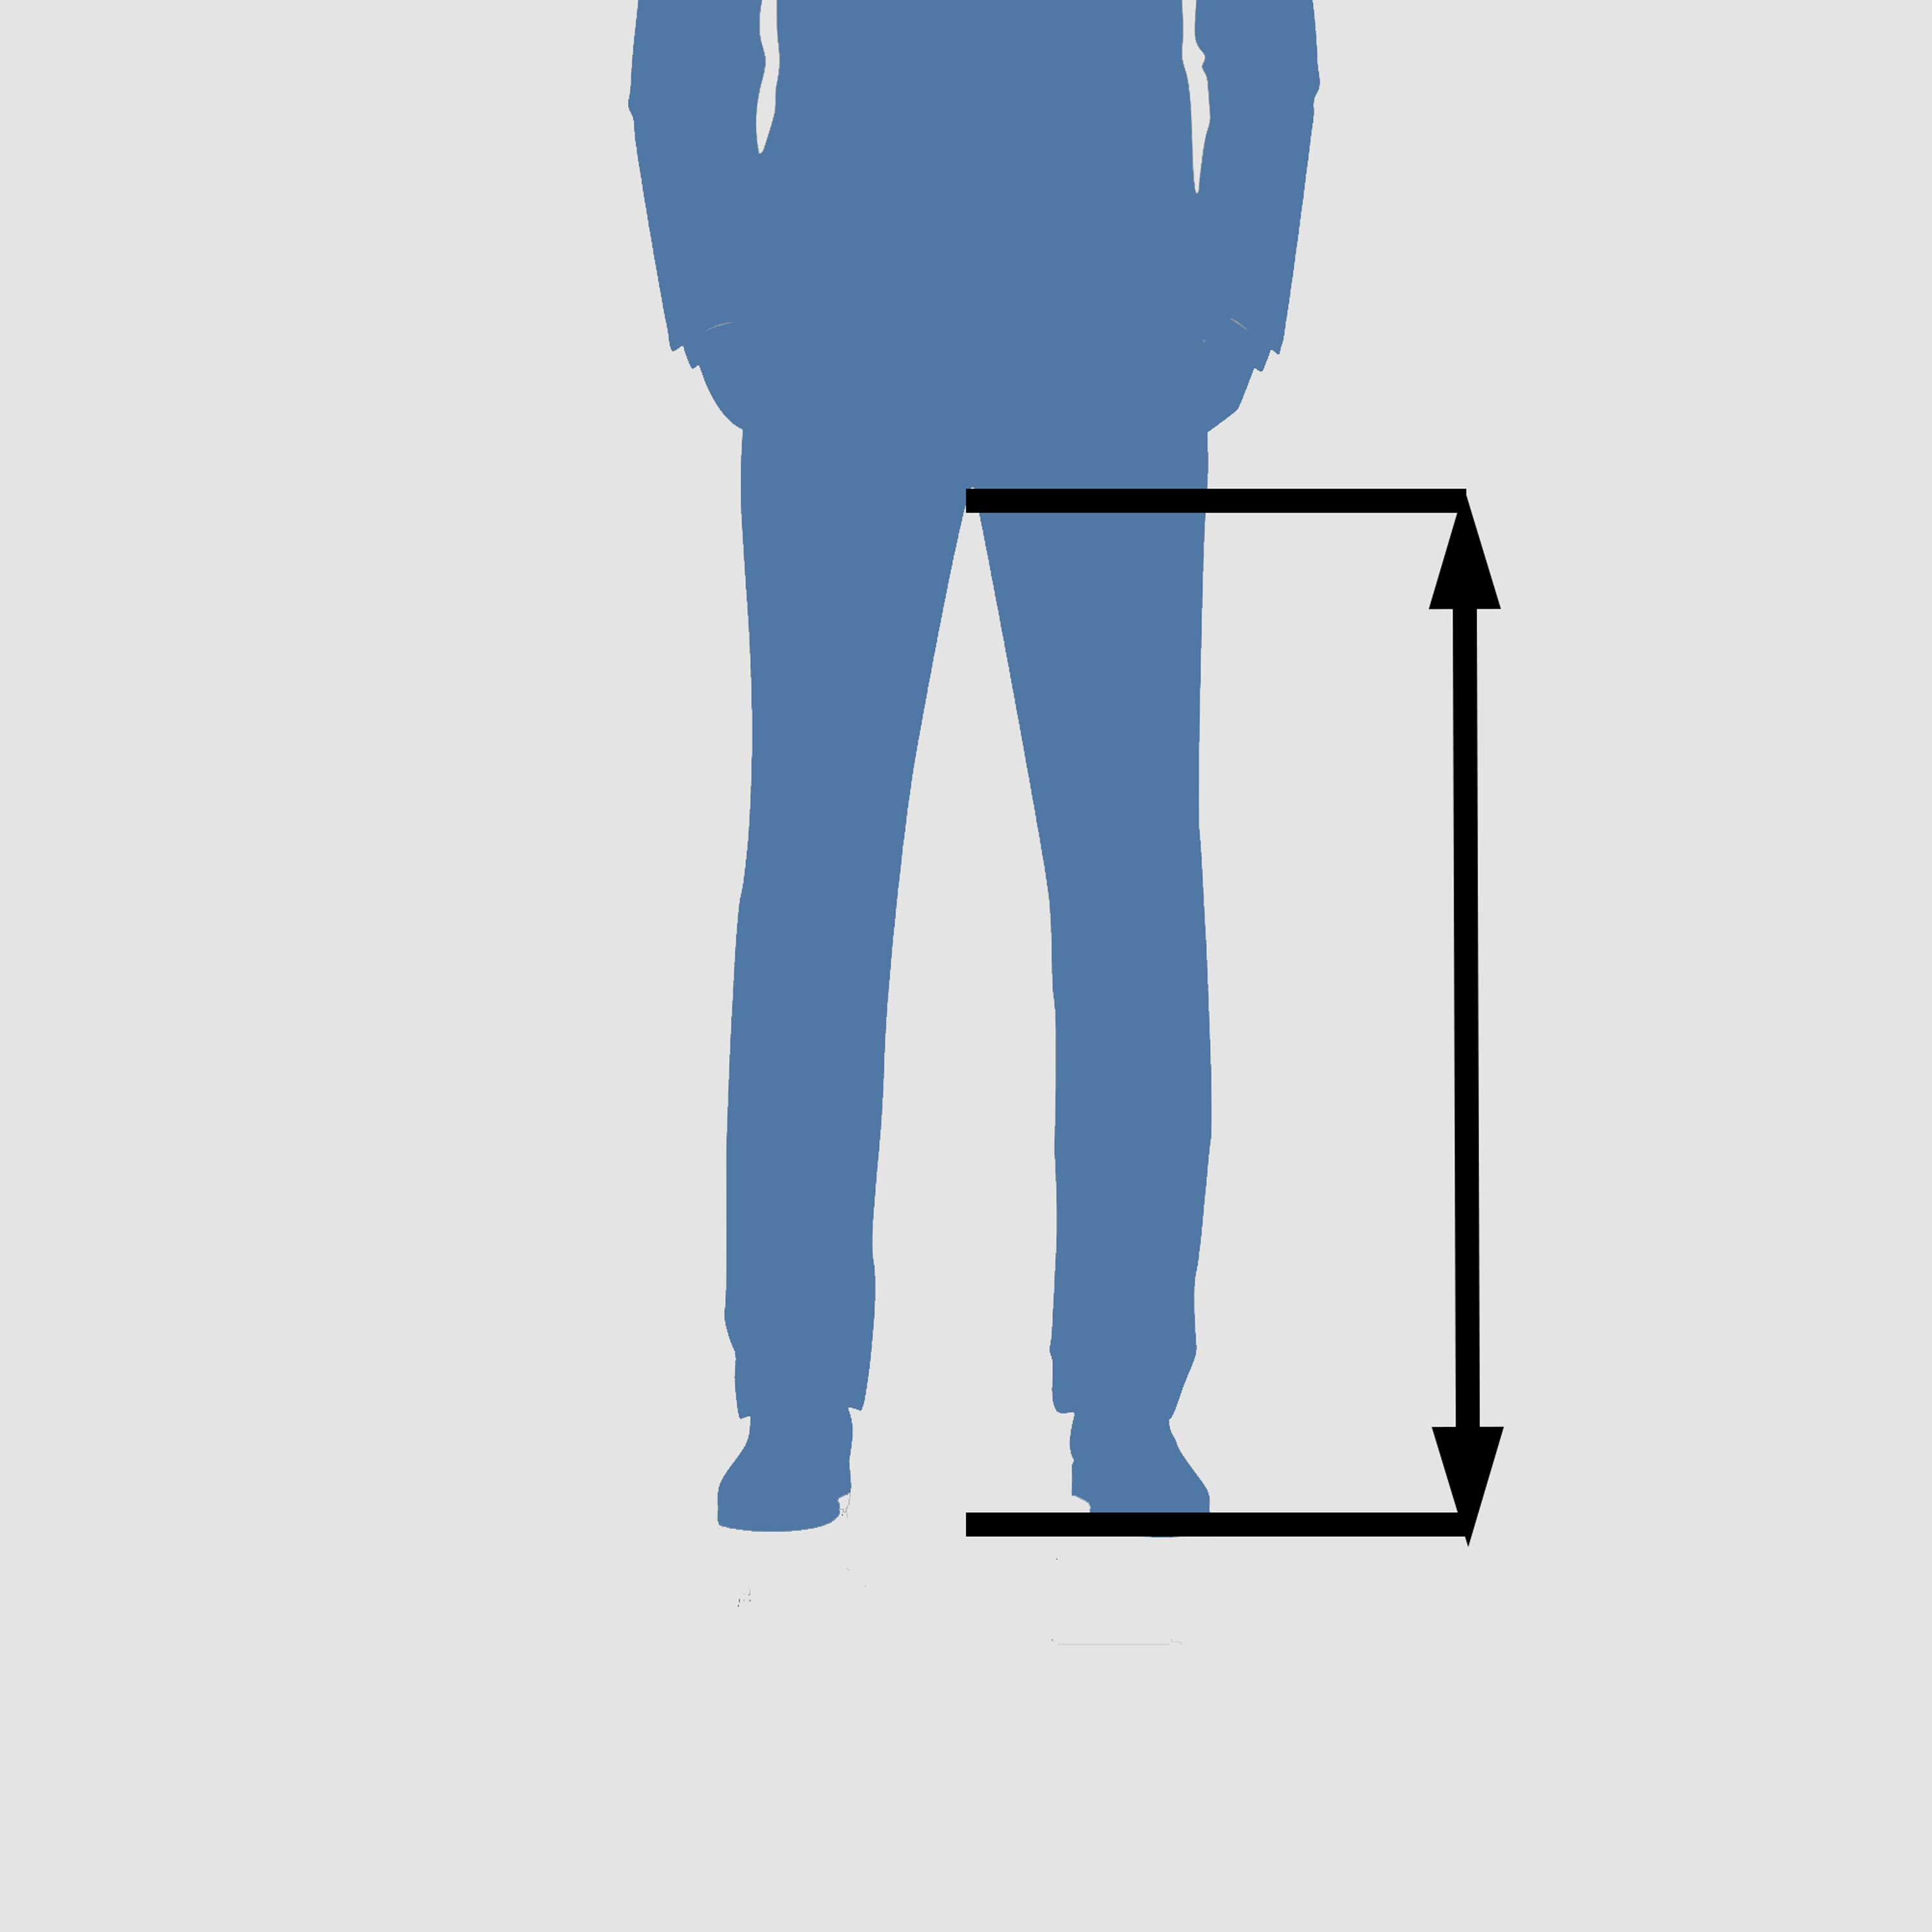 measure your leg height